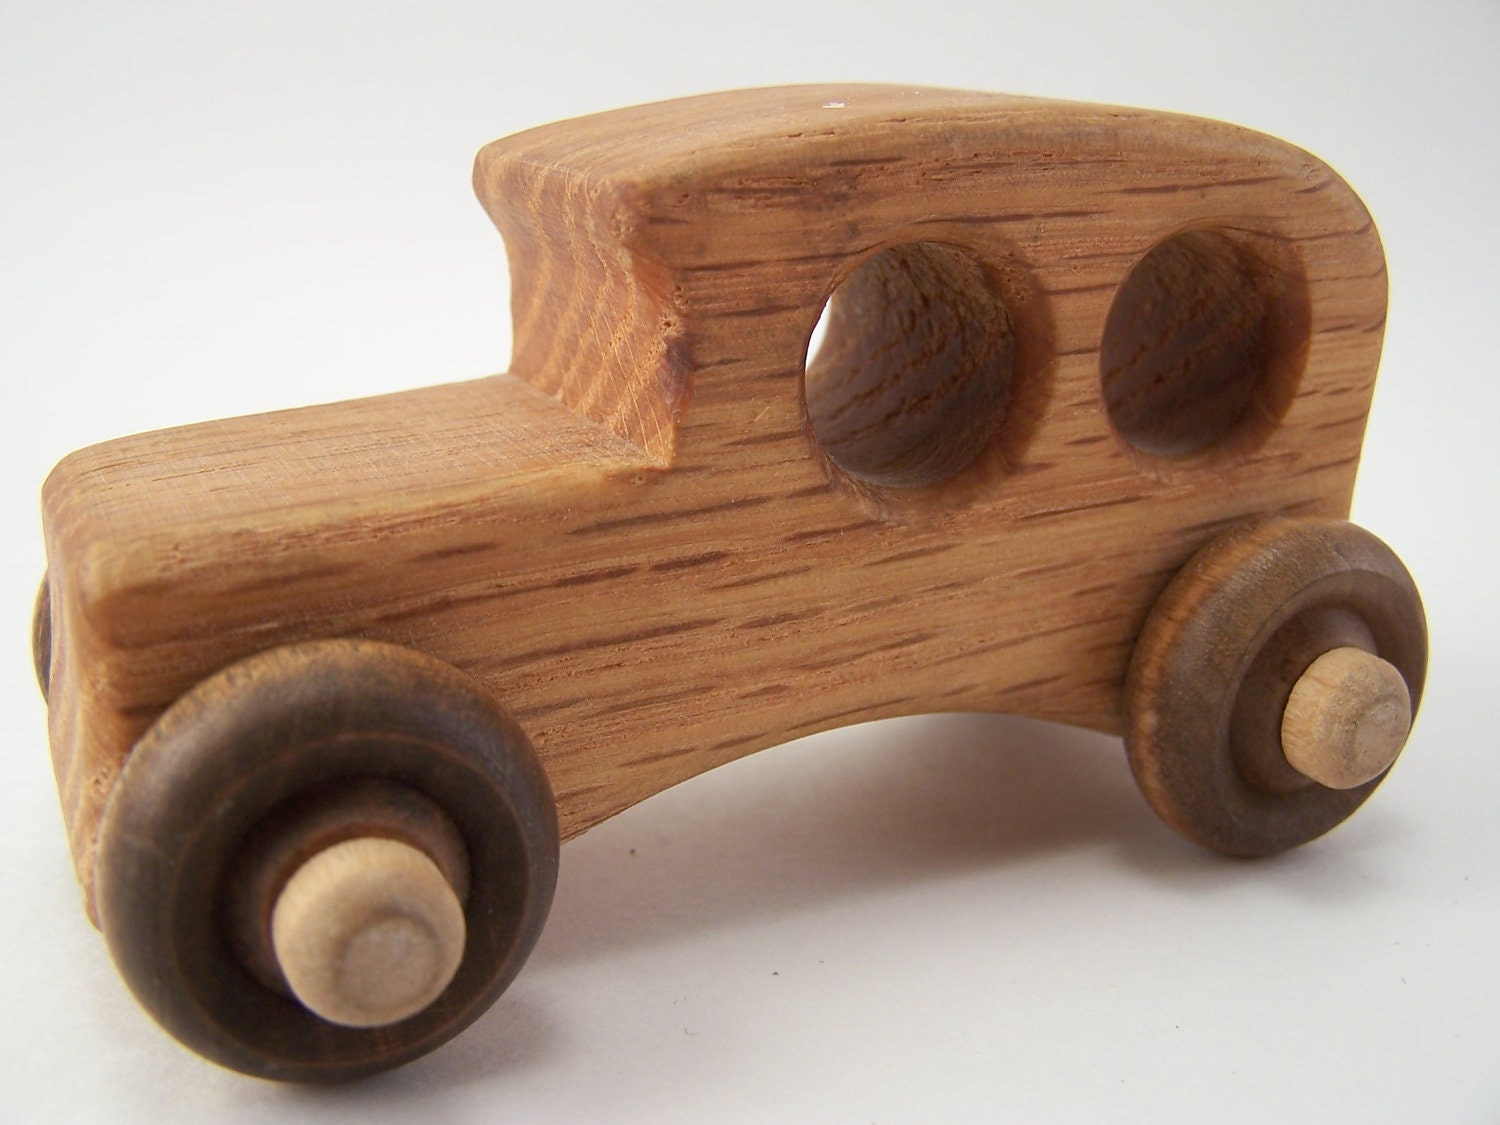 Vintage Wooden Wood Toy Car Children Gift Hand Made by GarageInc